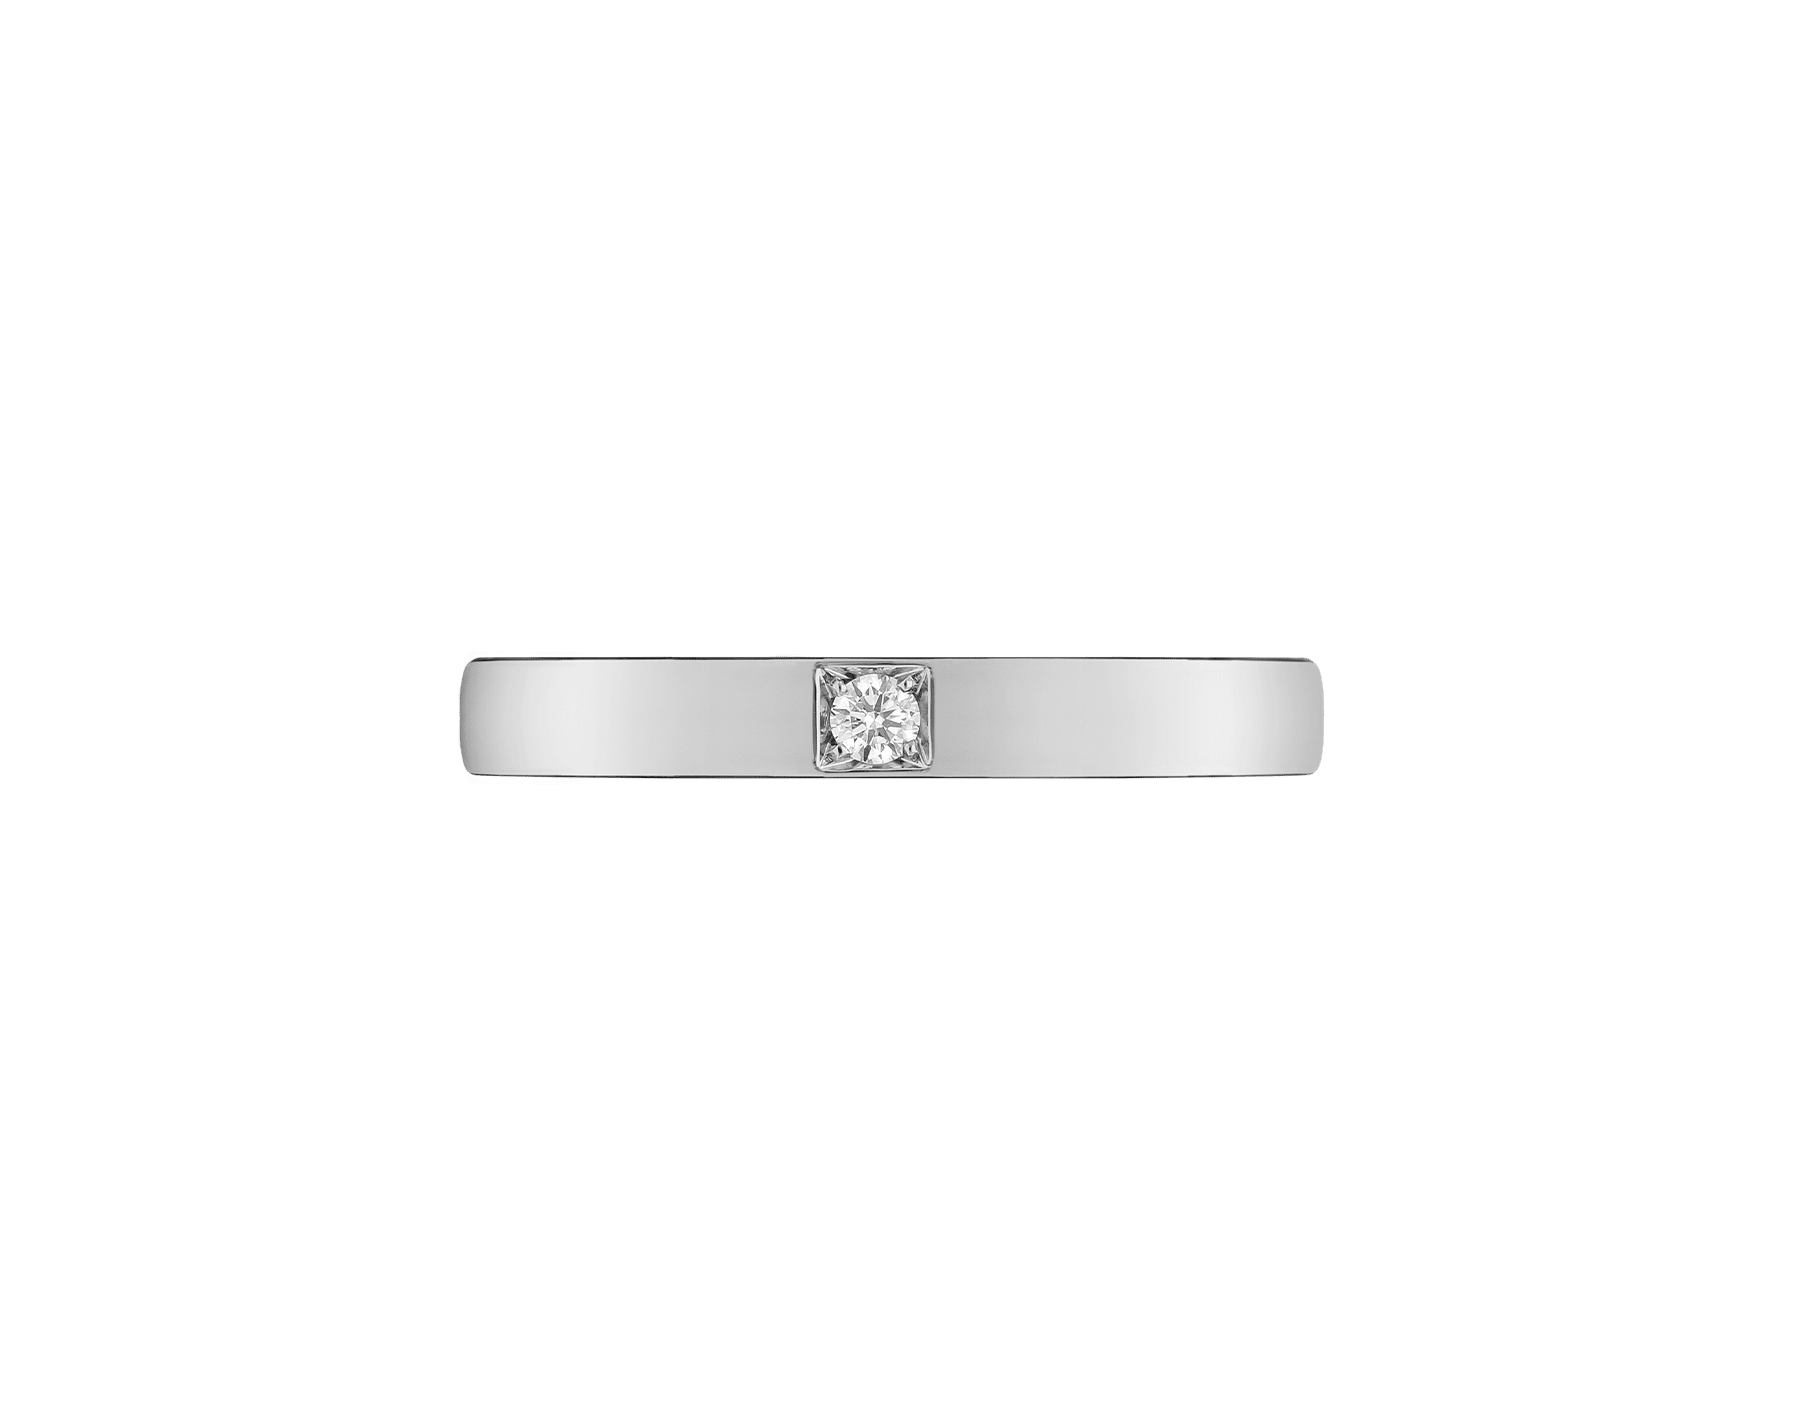 MarryMe platinum wedding band, set with a diamond. AN854104 image 2